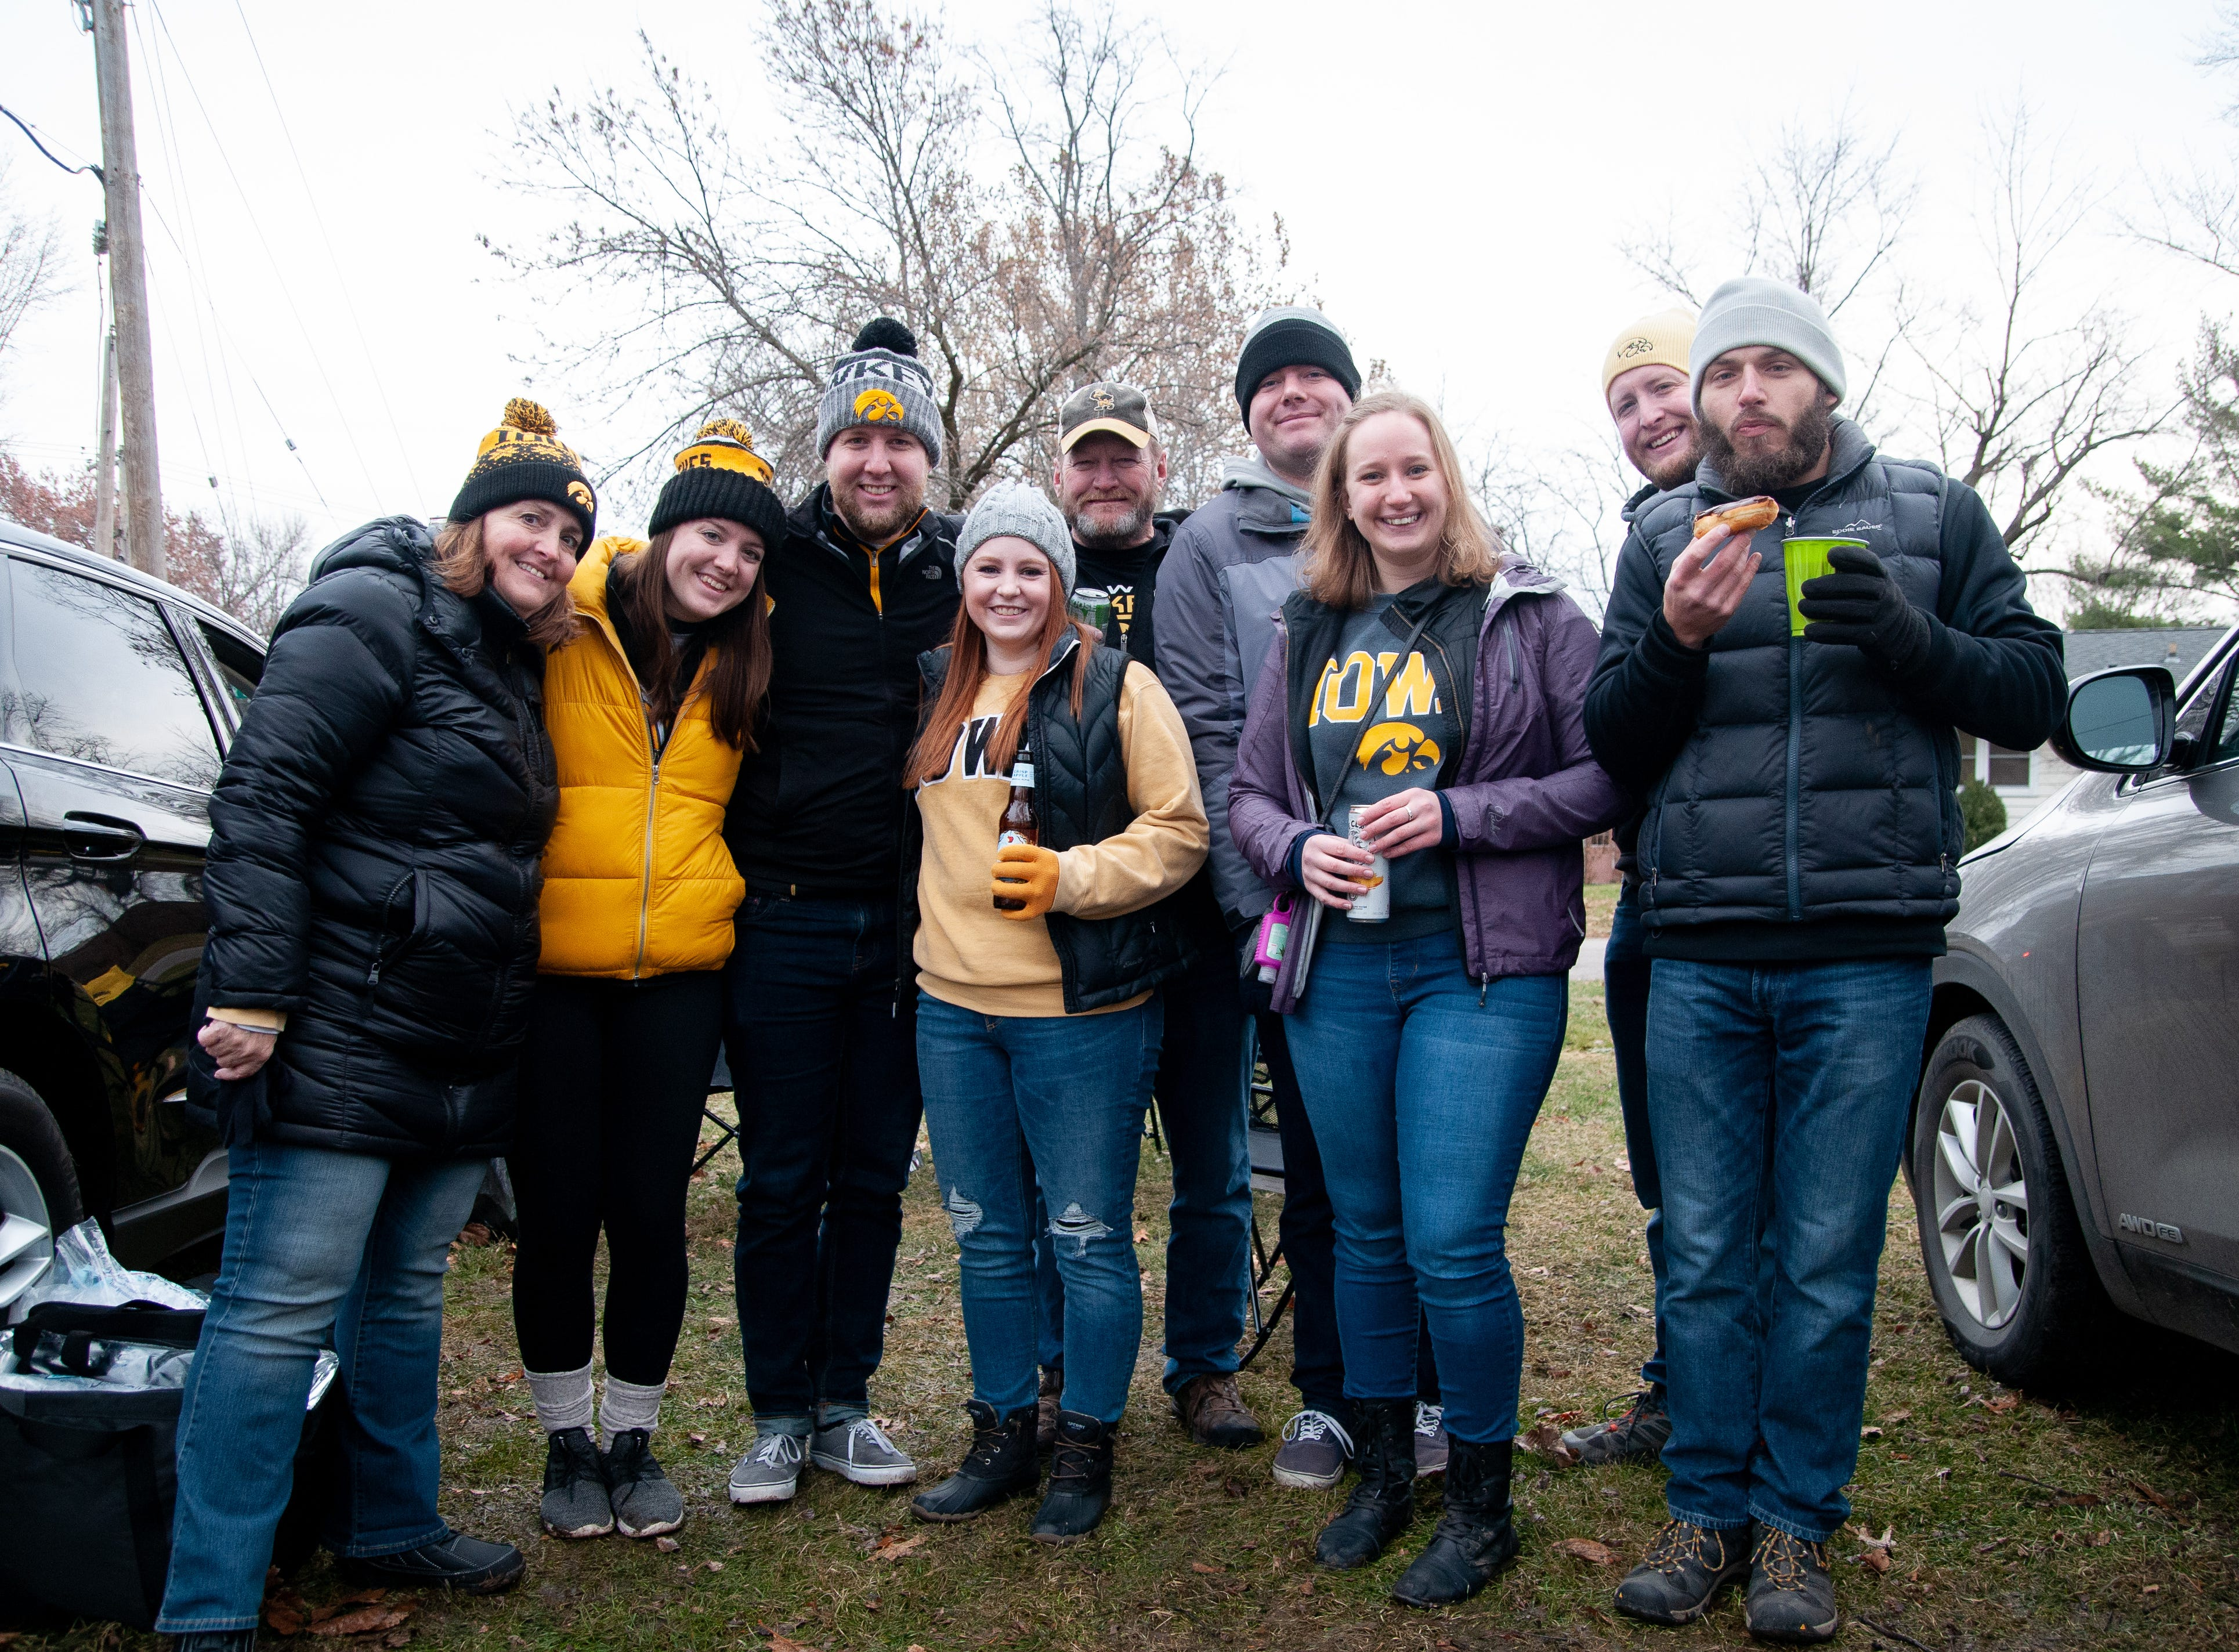 The Beals family, of Sioux City, Indianapolis and Iowa City, Friday, Nov. 23, 2018, while tailgating before the Iowa game against Nebraska in Iowa City.